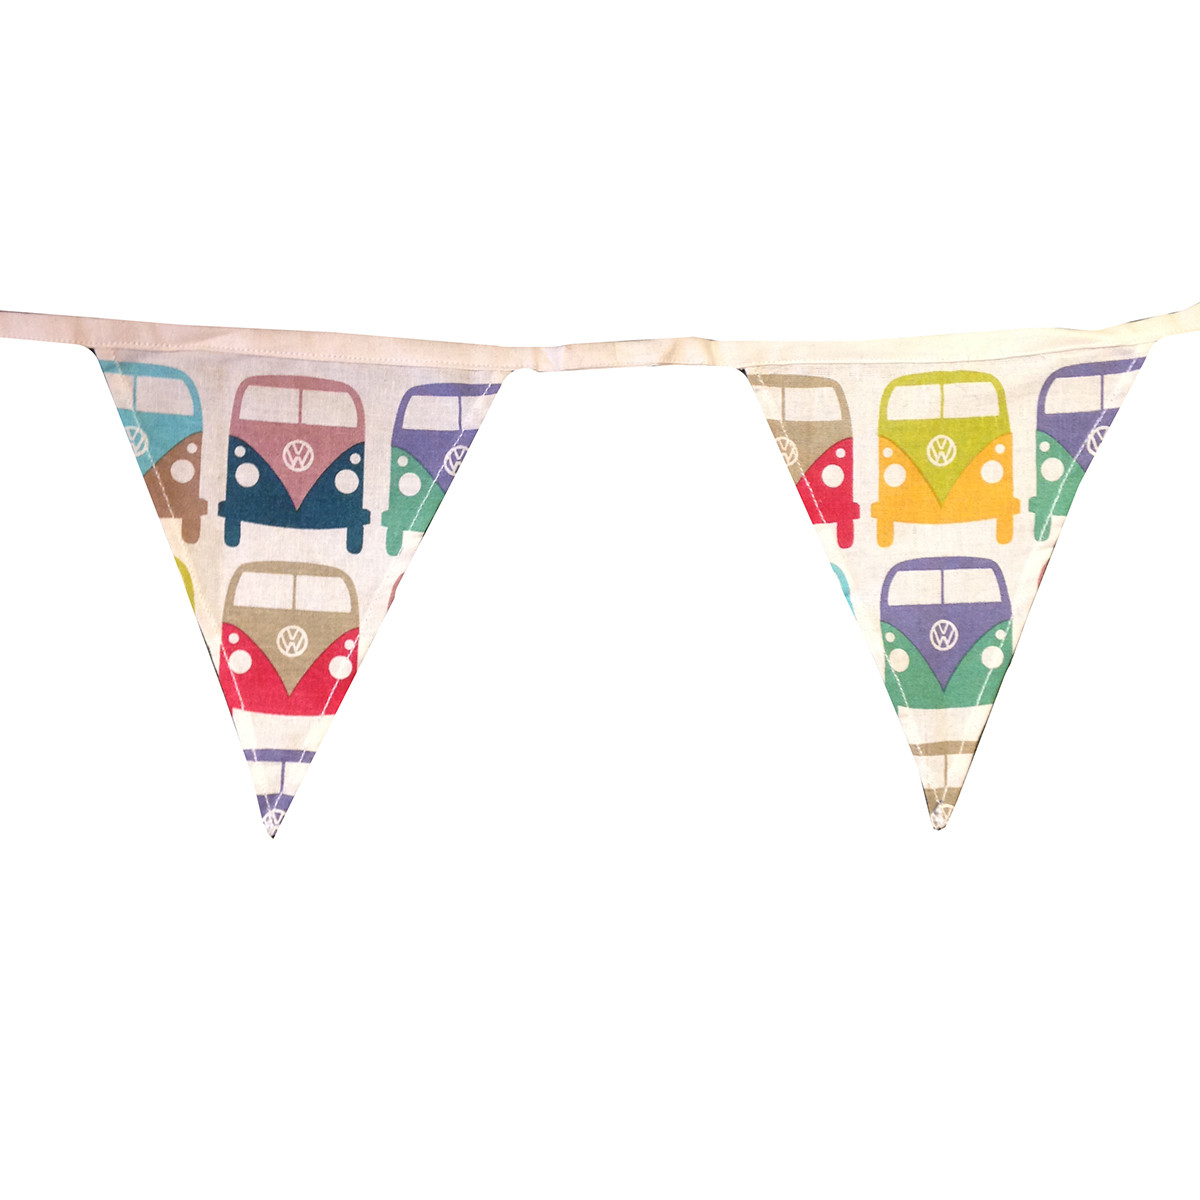 Official VW Camper Van Cotton Fabric Bunting Montage